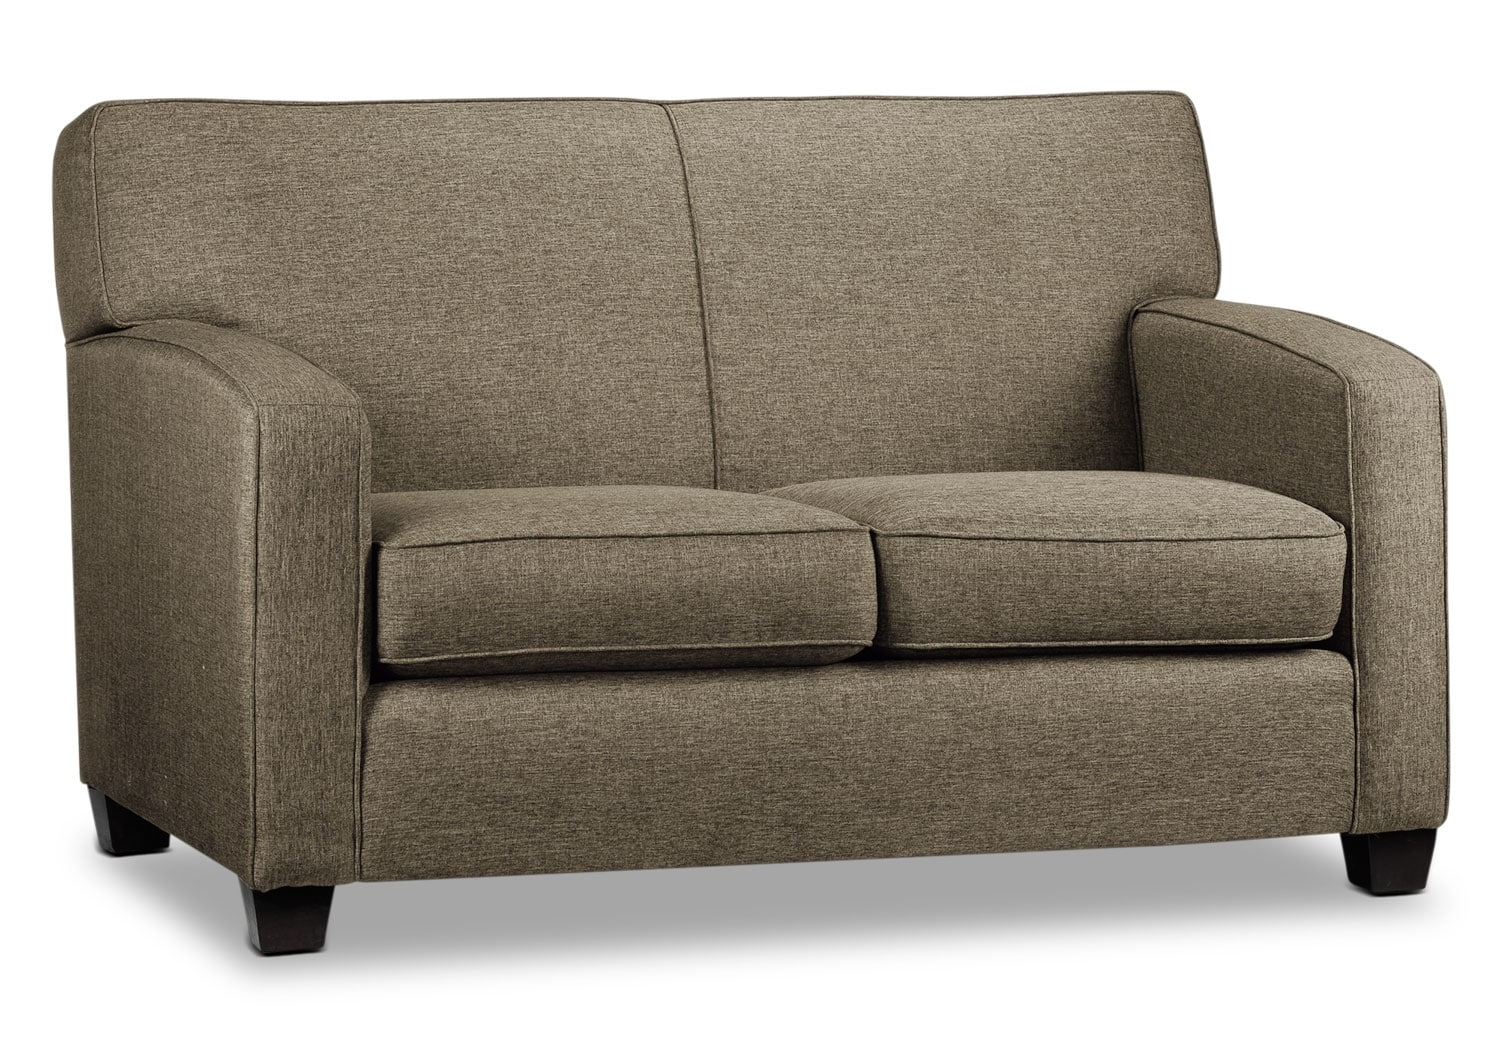 Falcon Loveseat - Beige